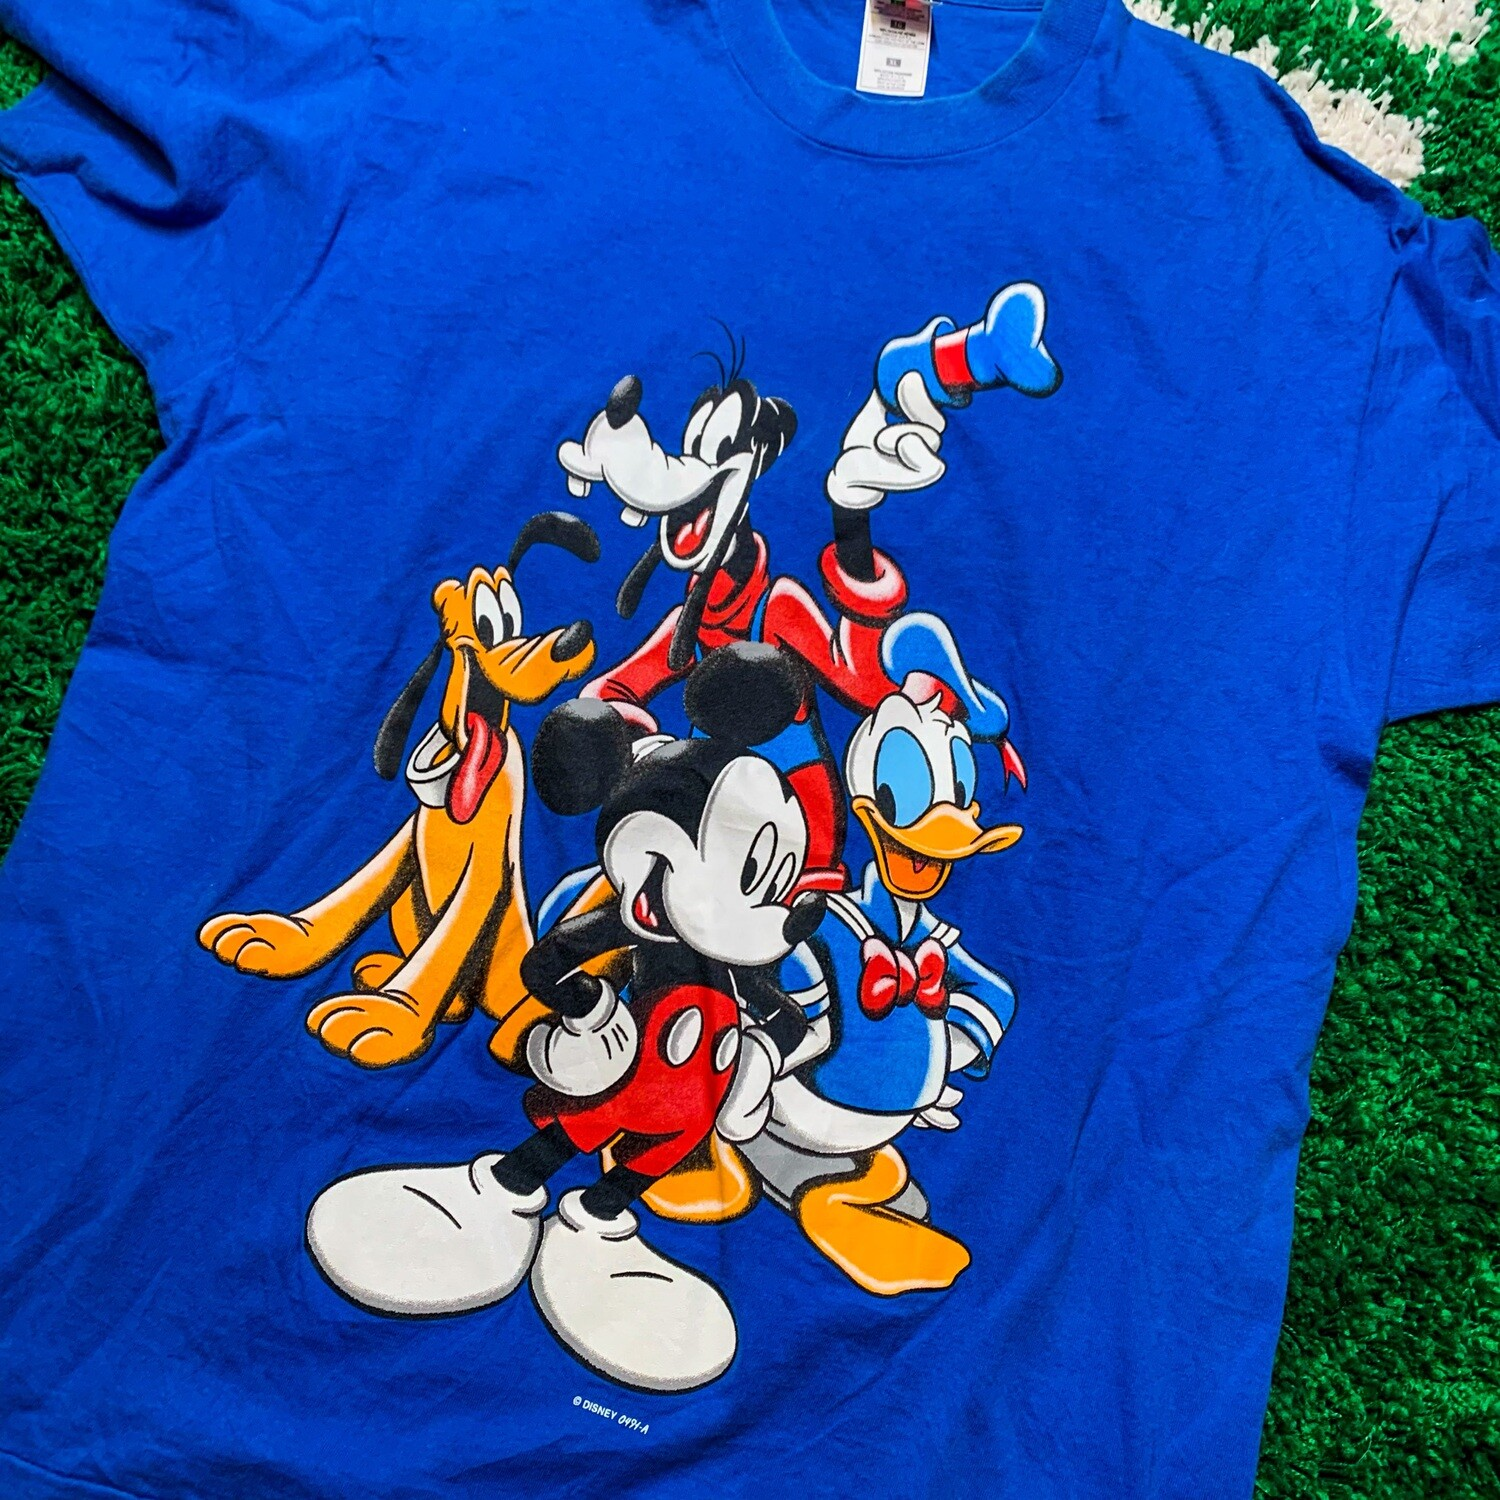 Disney Mickey and Friends Blue Tee Size XL